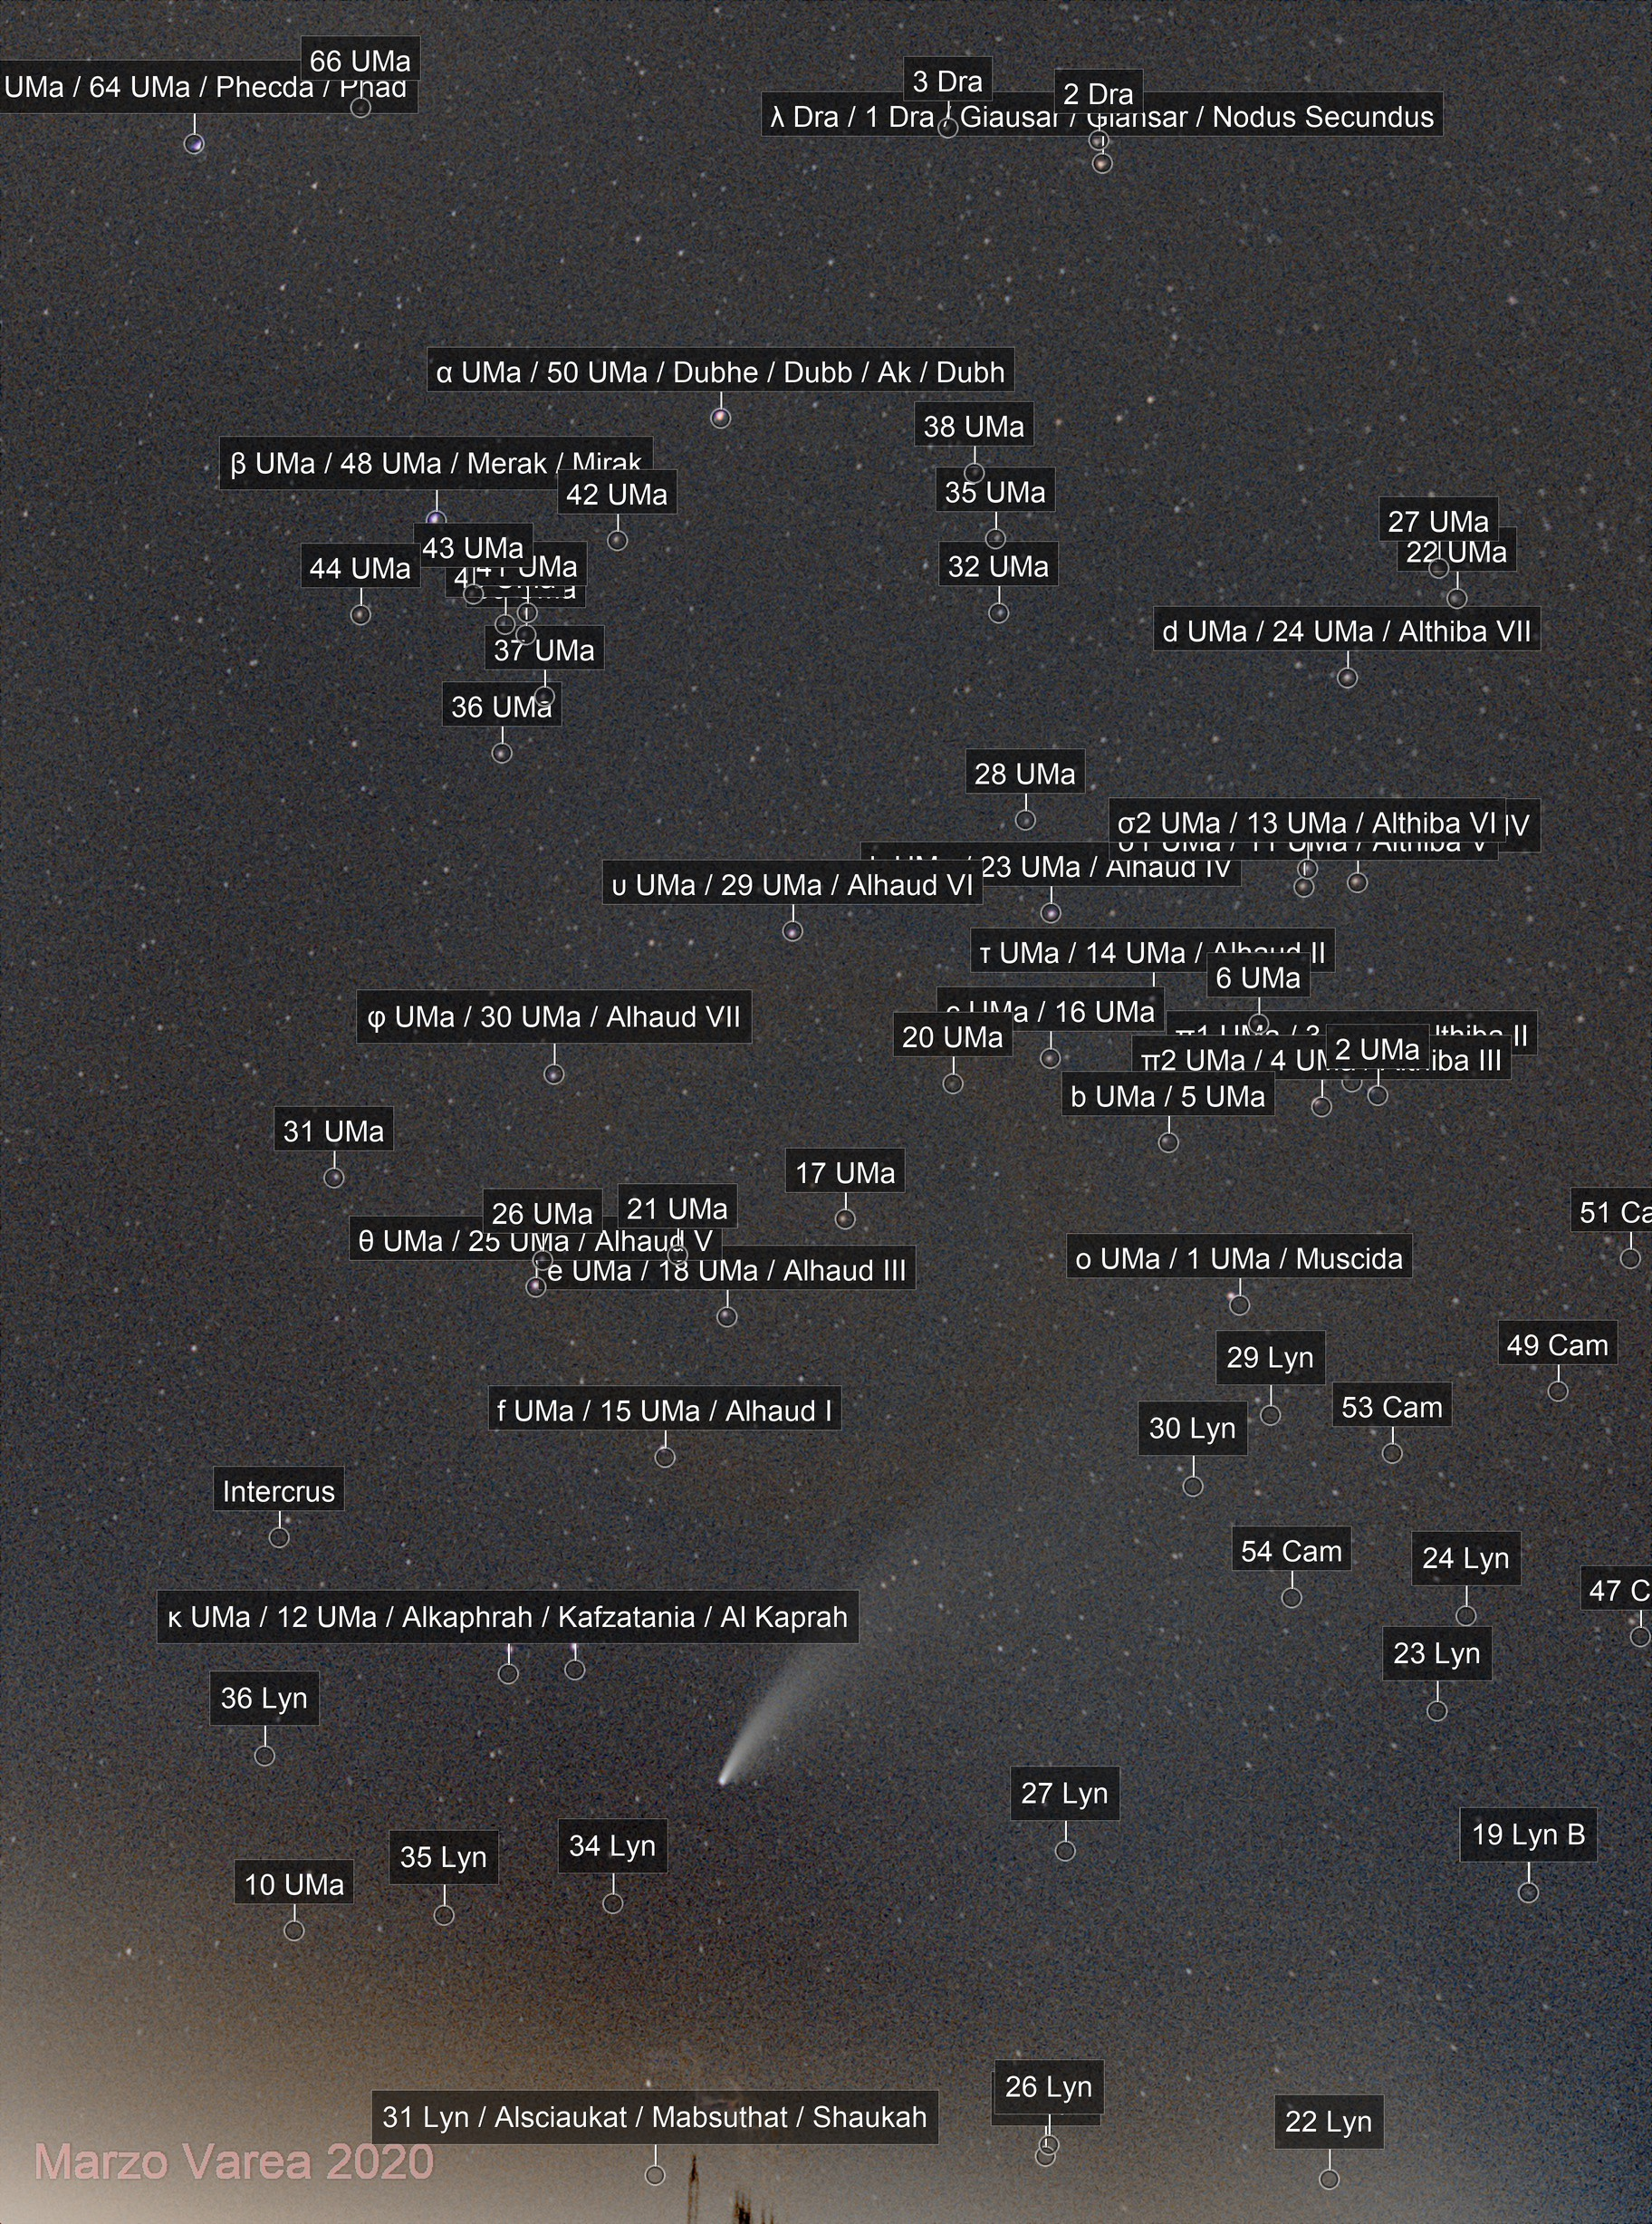 Comet C/2020 F3 (NEOWISE) in a Bortle 8 sky